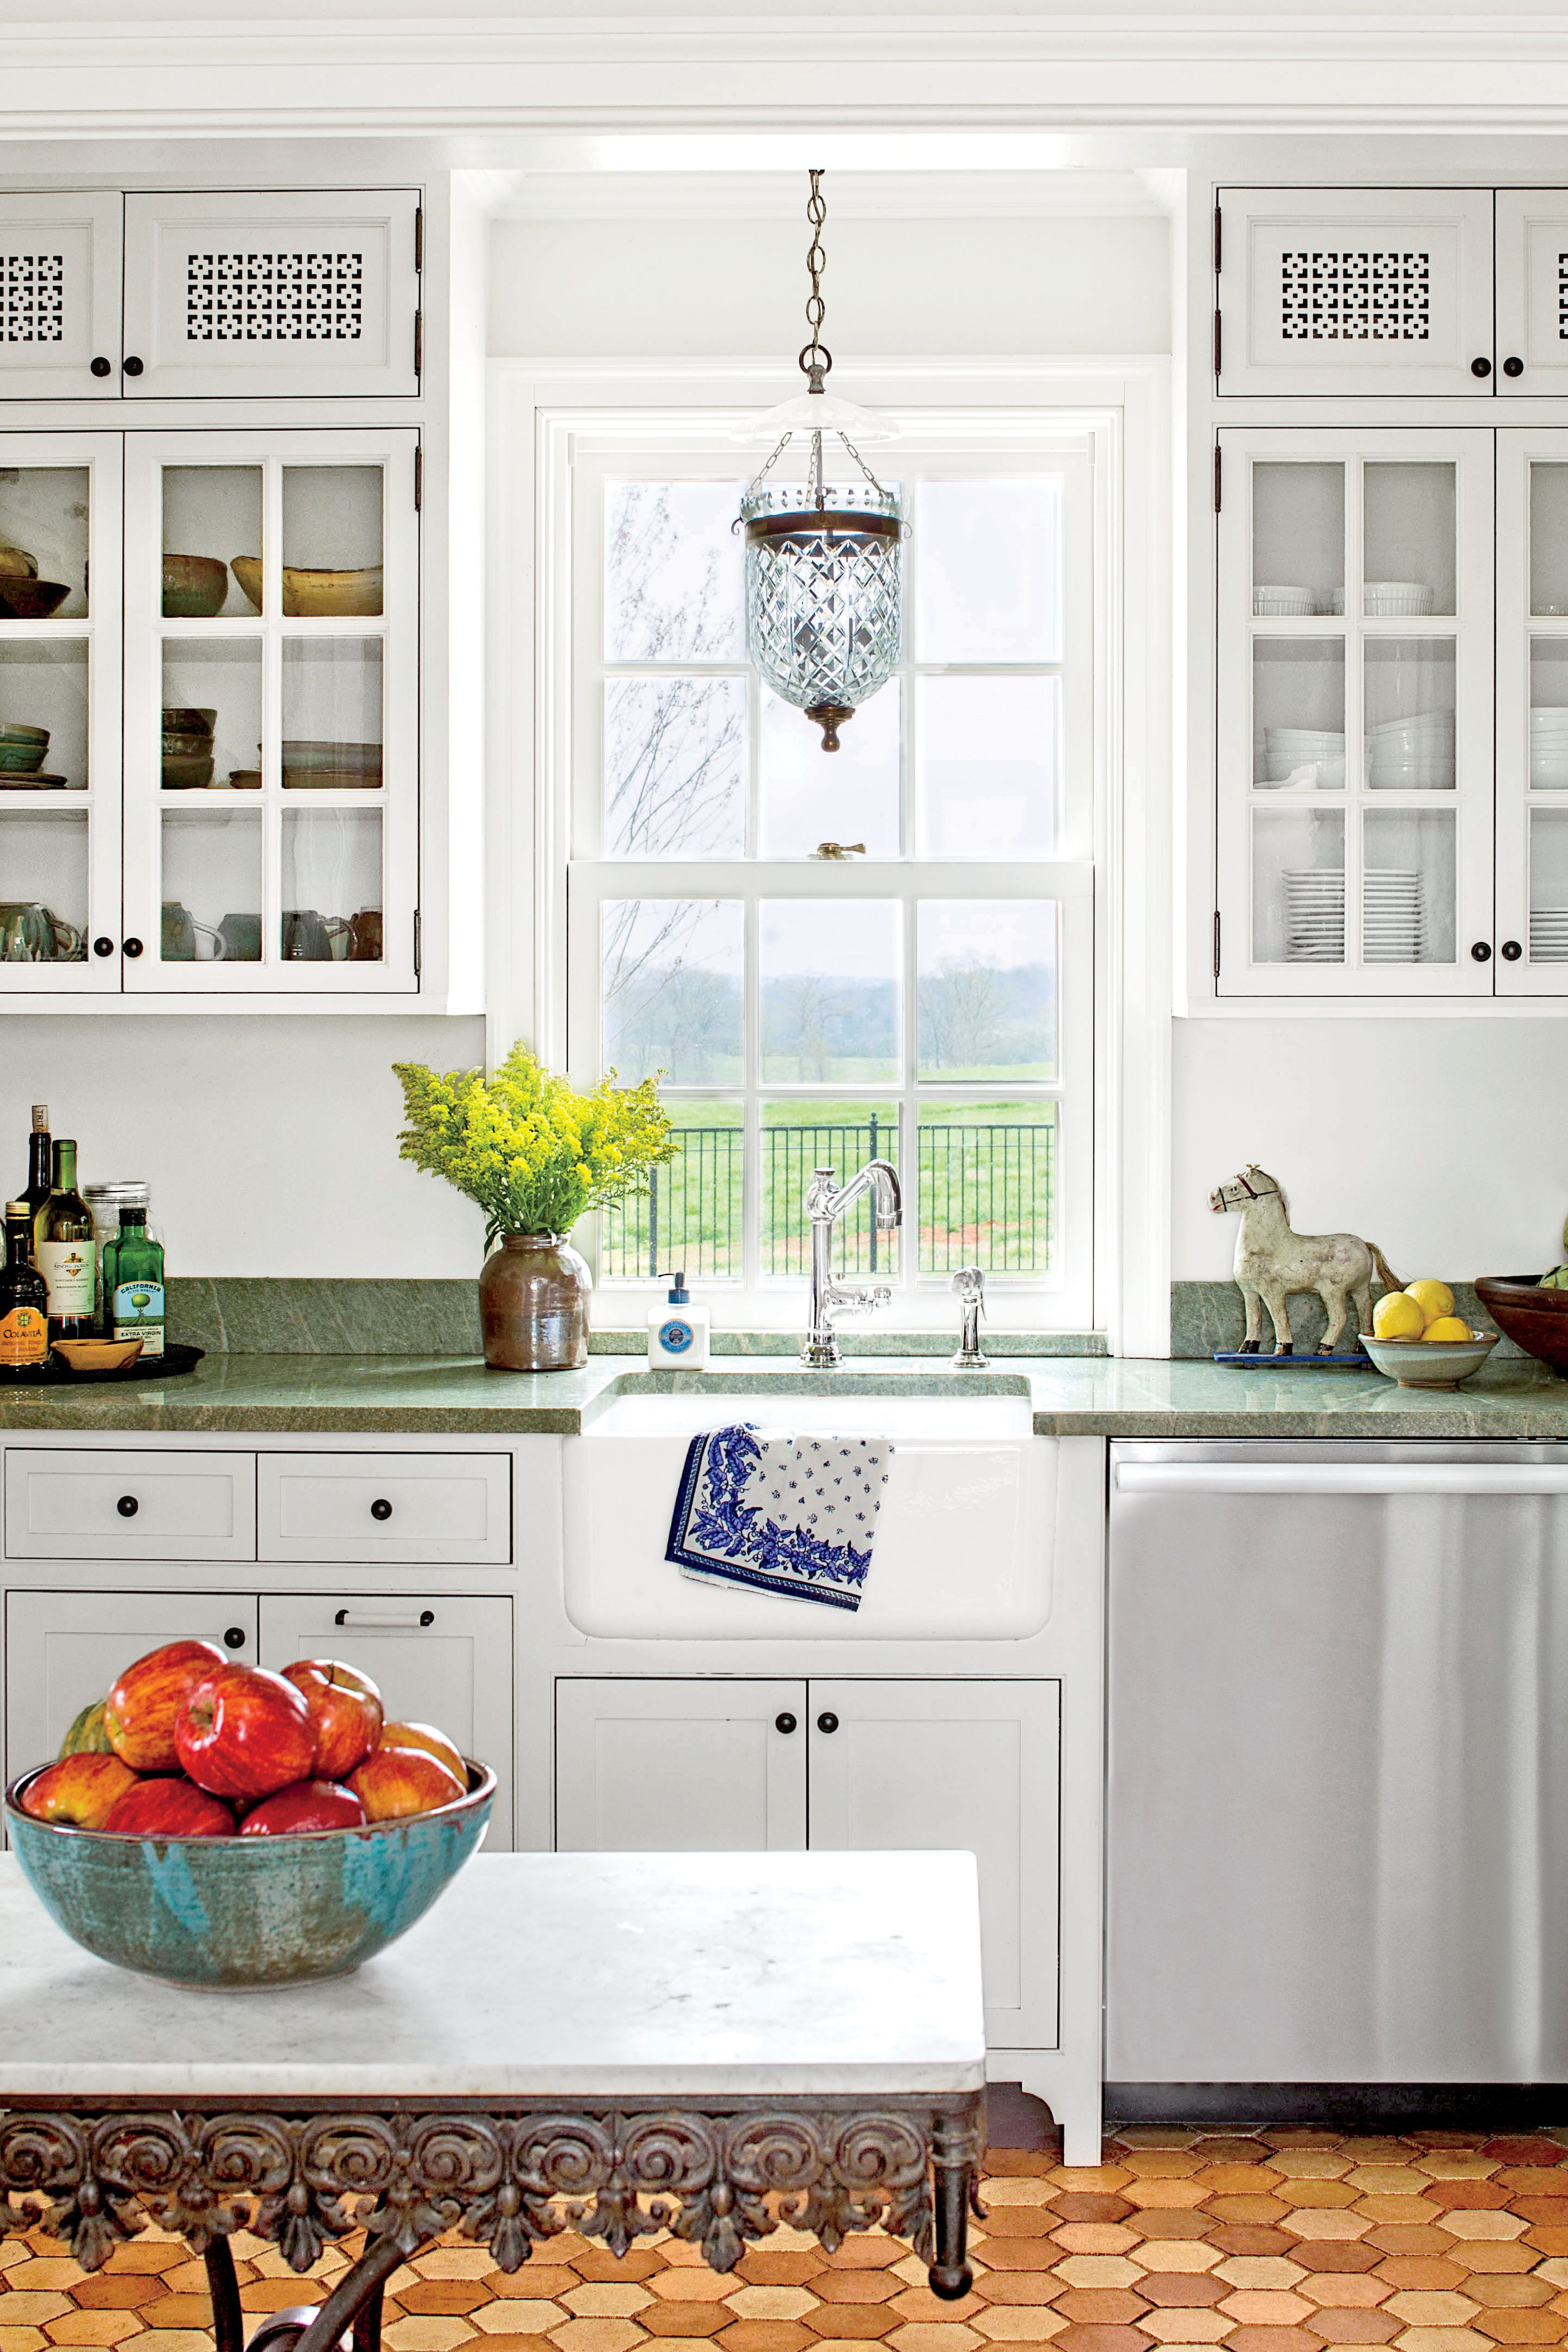 White kitchen with green soapstone counters good ideas for small